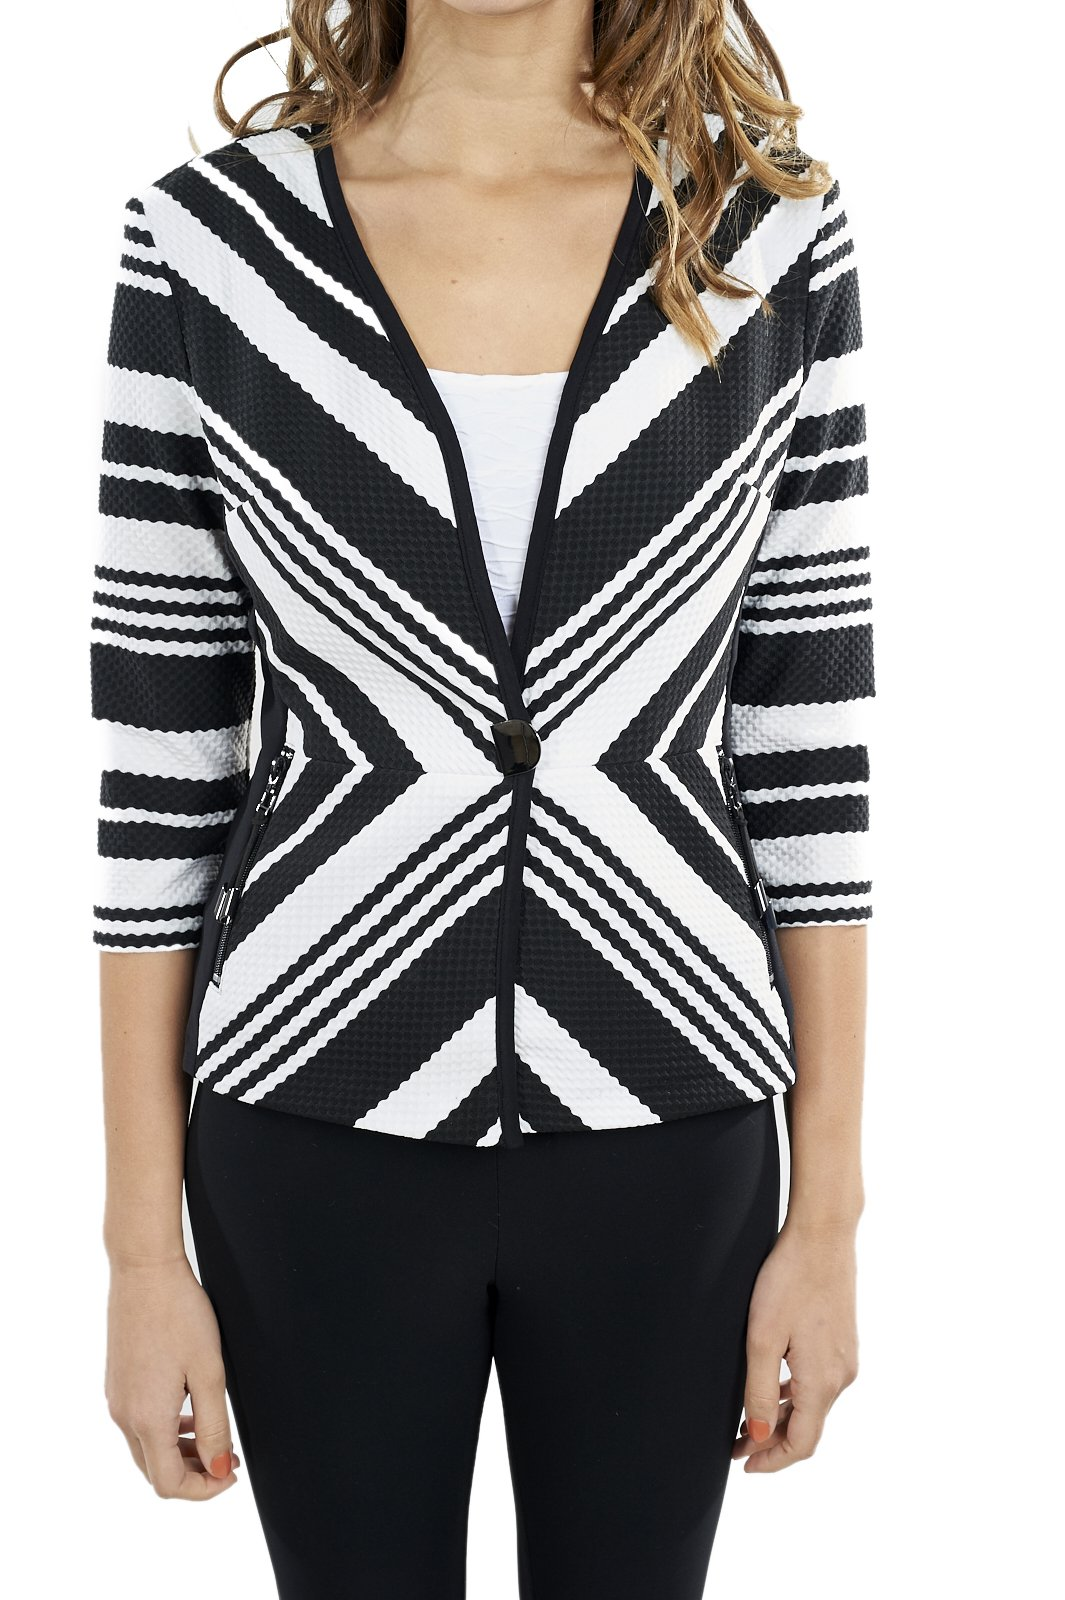 Joseph Ribkoff Black & White Striped Textured Coverup Jacket Style 172852 - Size 6 by Joseph Ribkoff